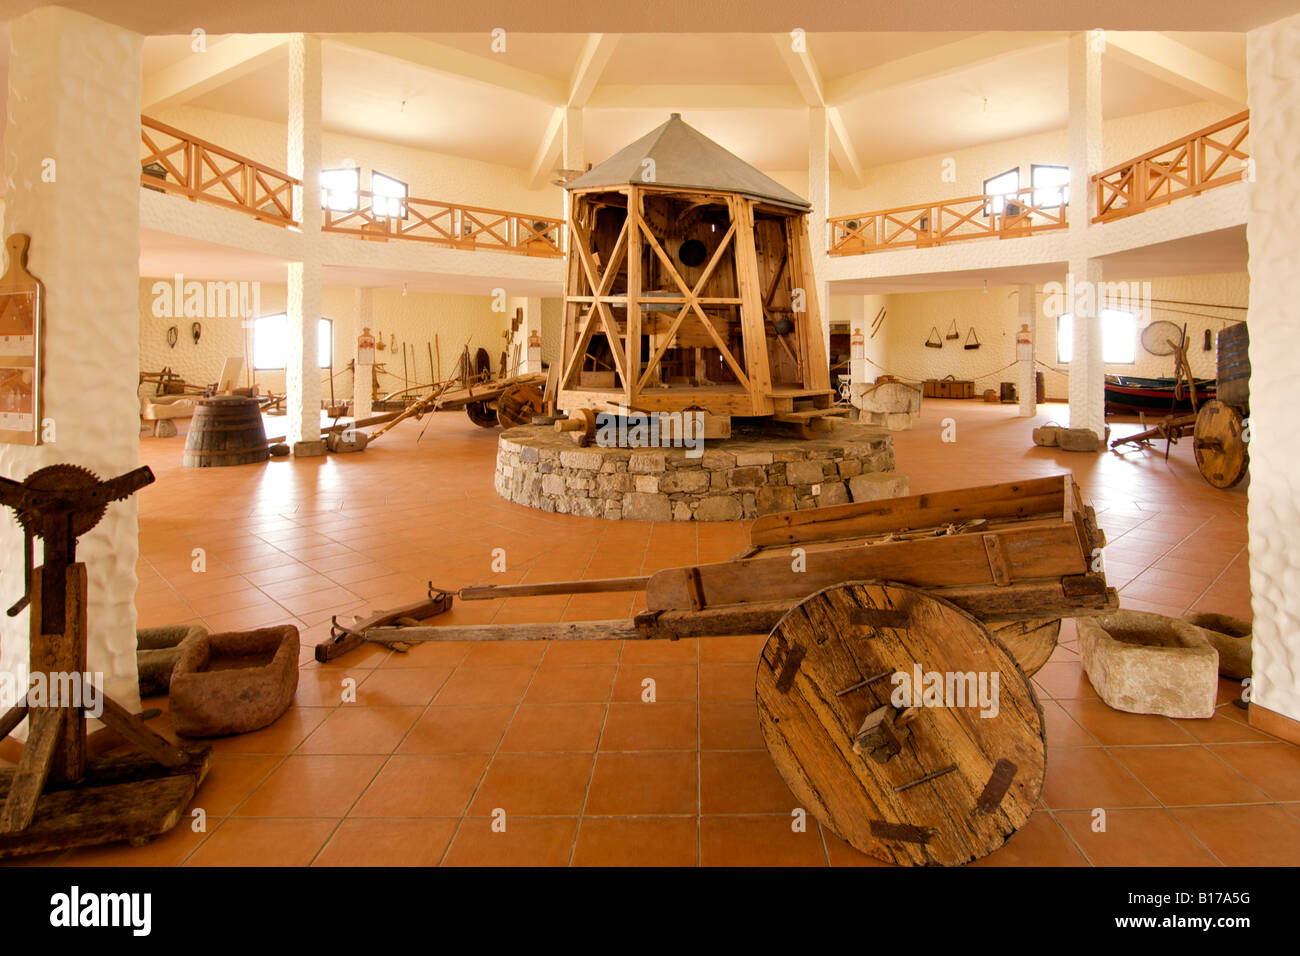 Interior of the Museu do Cardina museum on the Portuguese Atlantic island of Porto Santo. - Stock Image